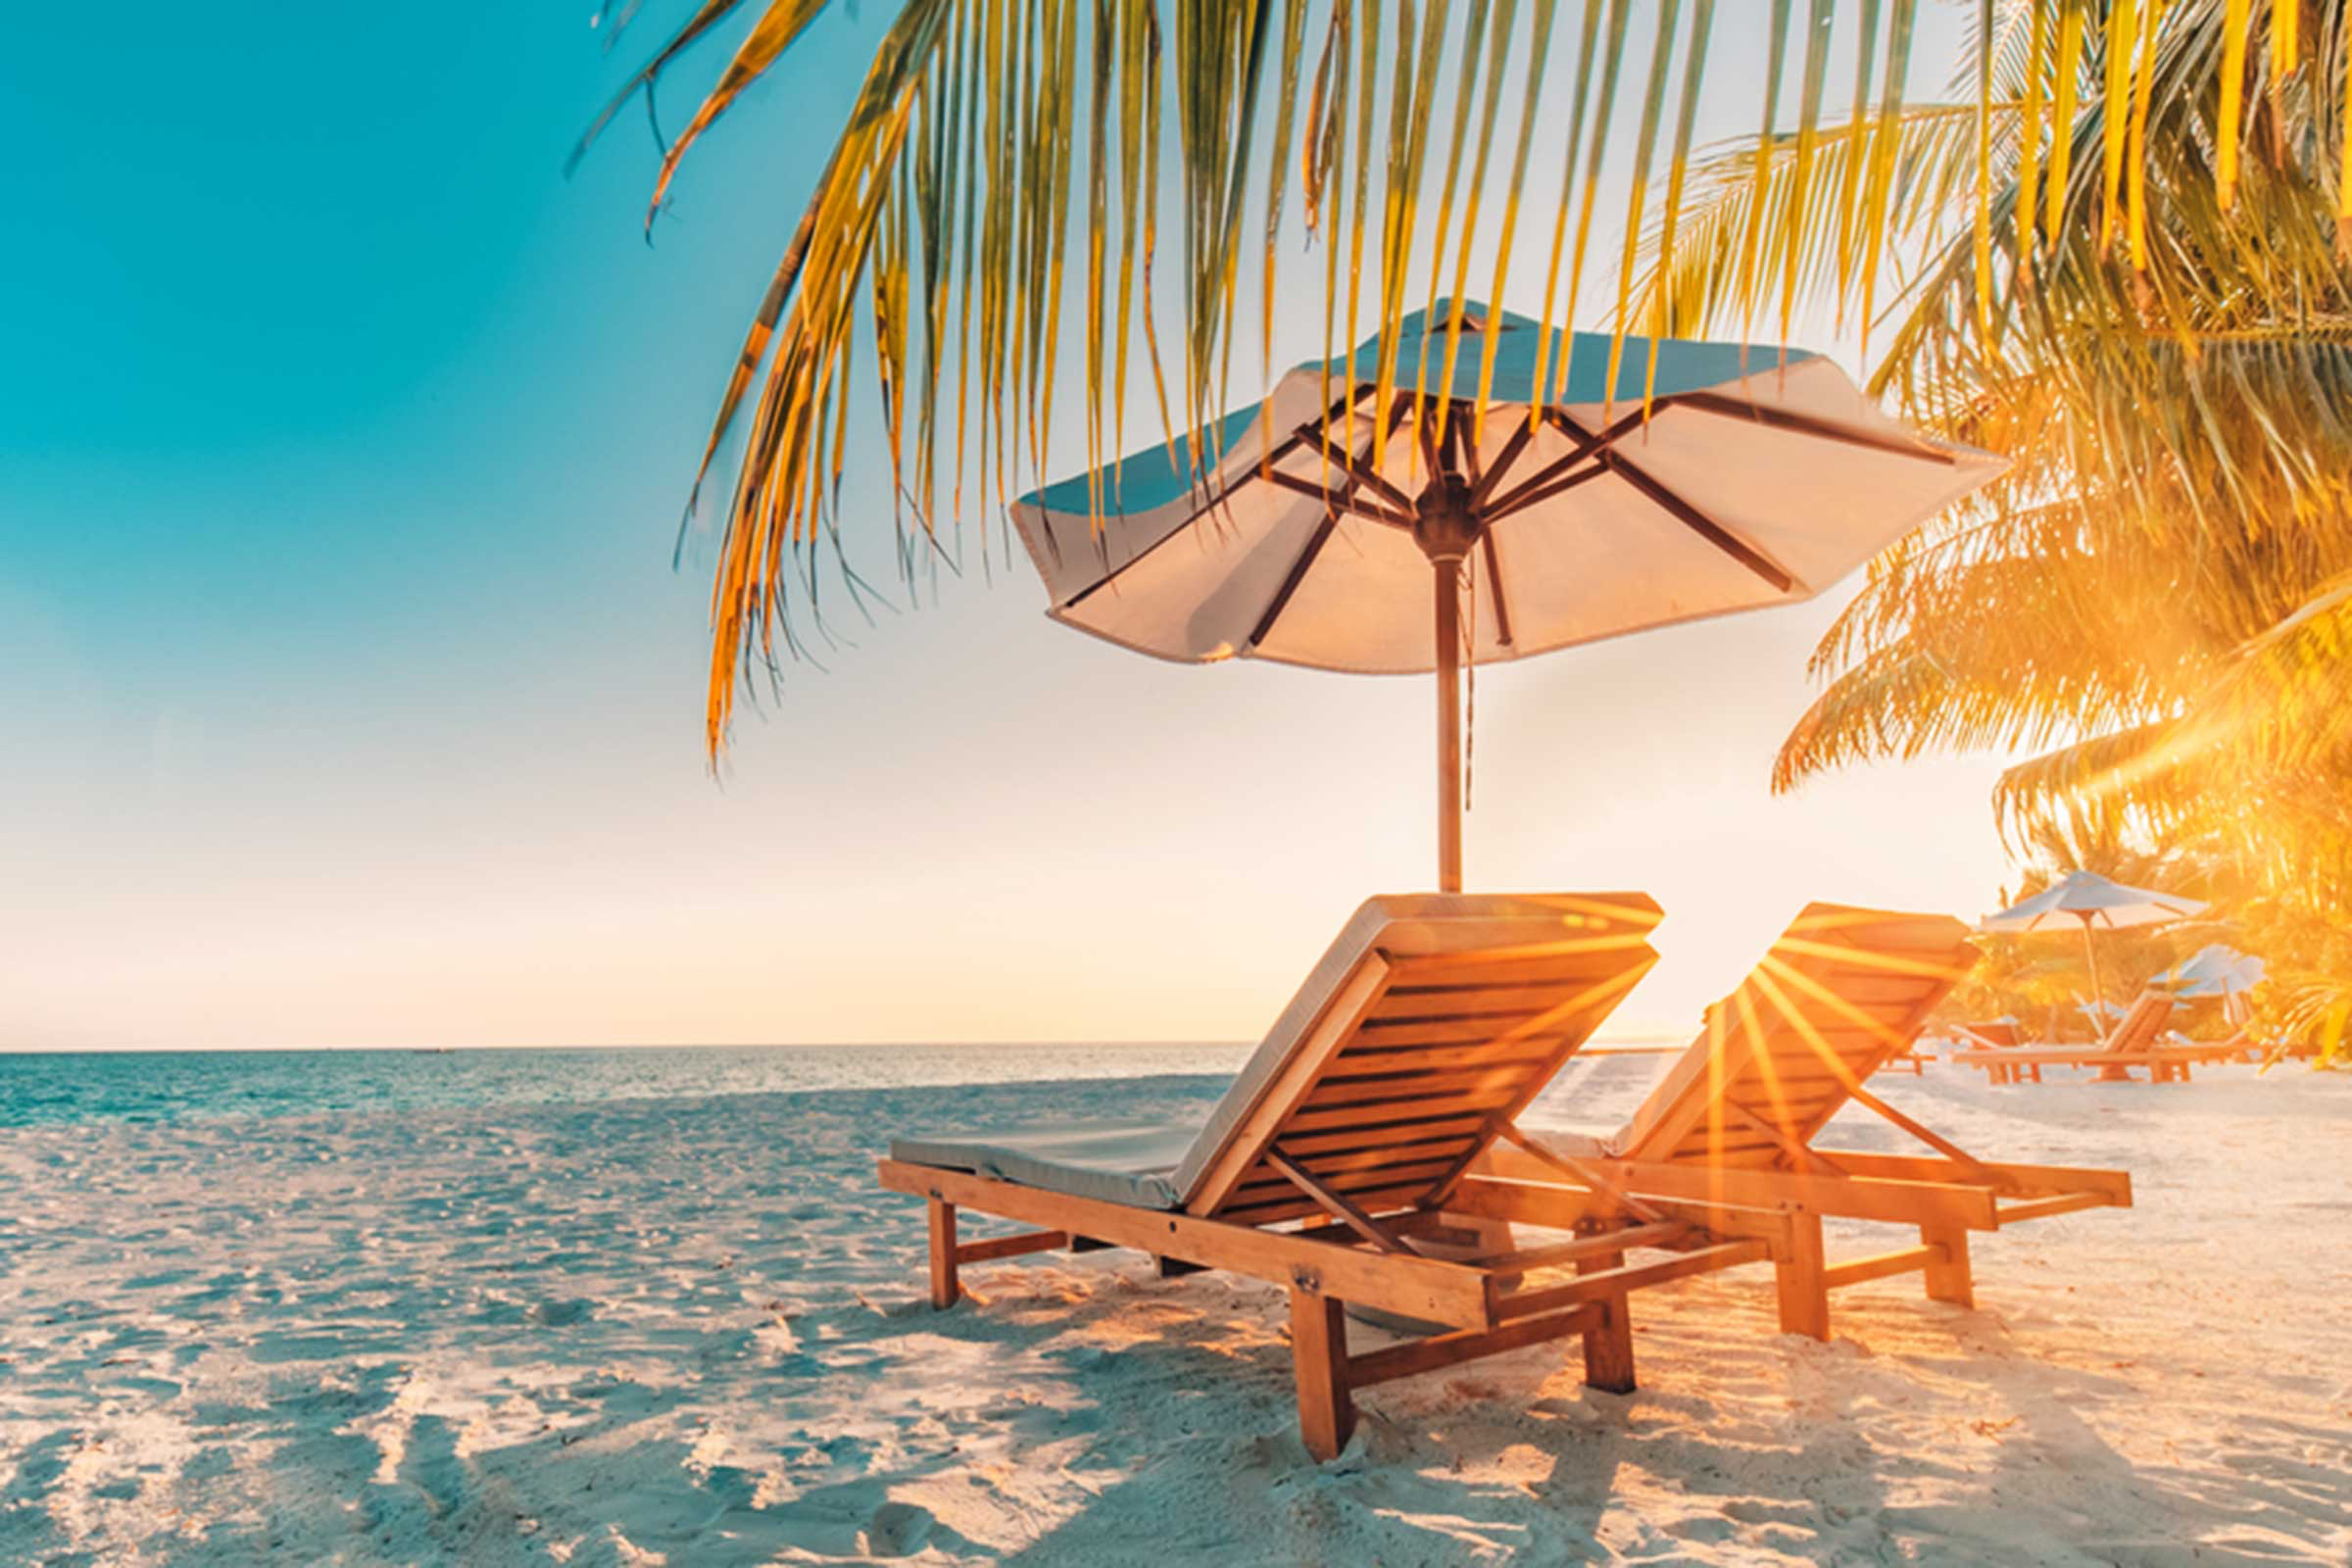 Summer on a Budget? Here's how to Make the Most of It!